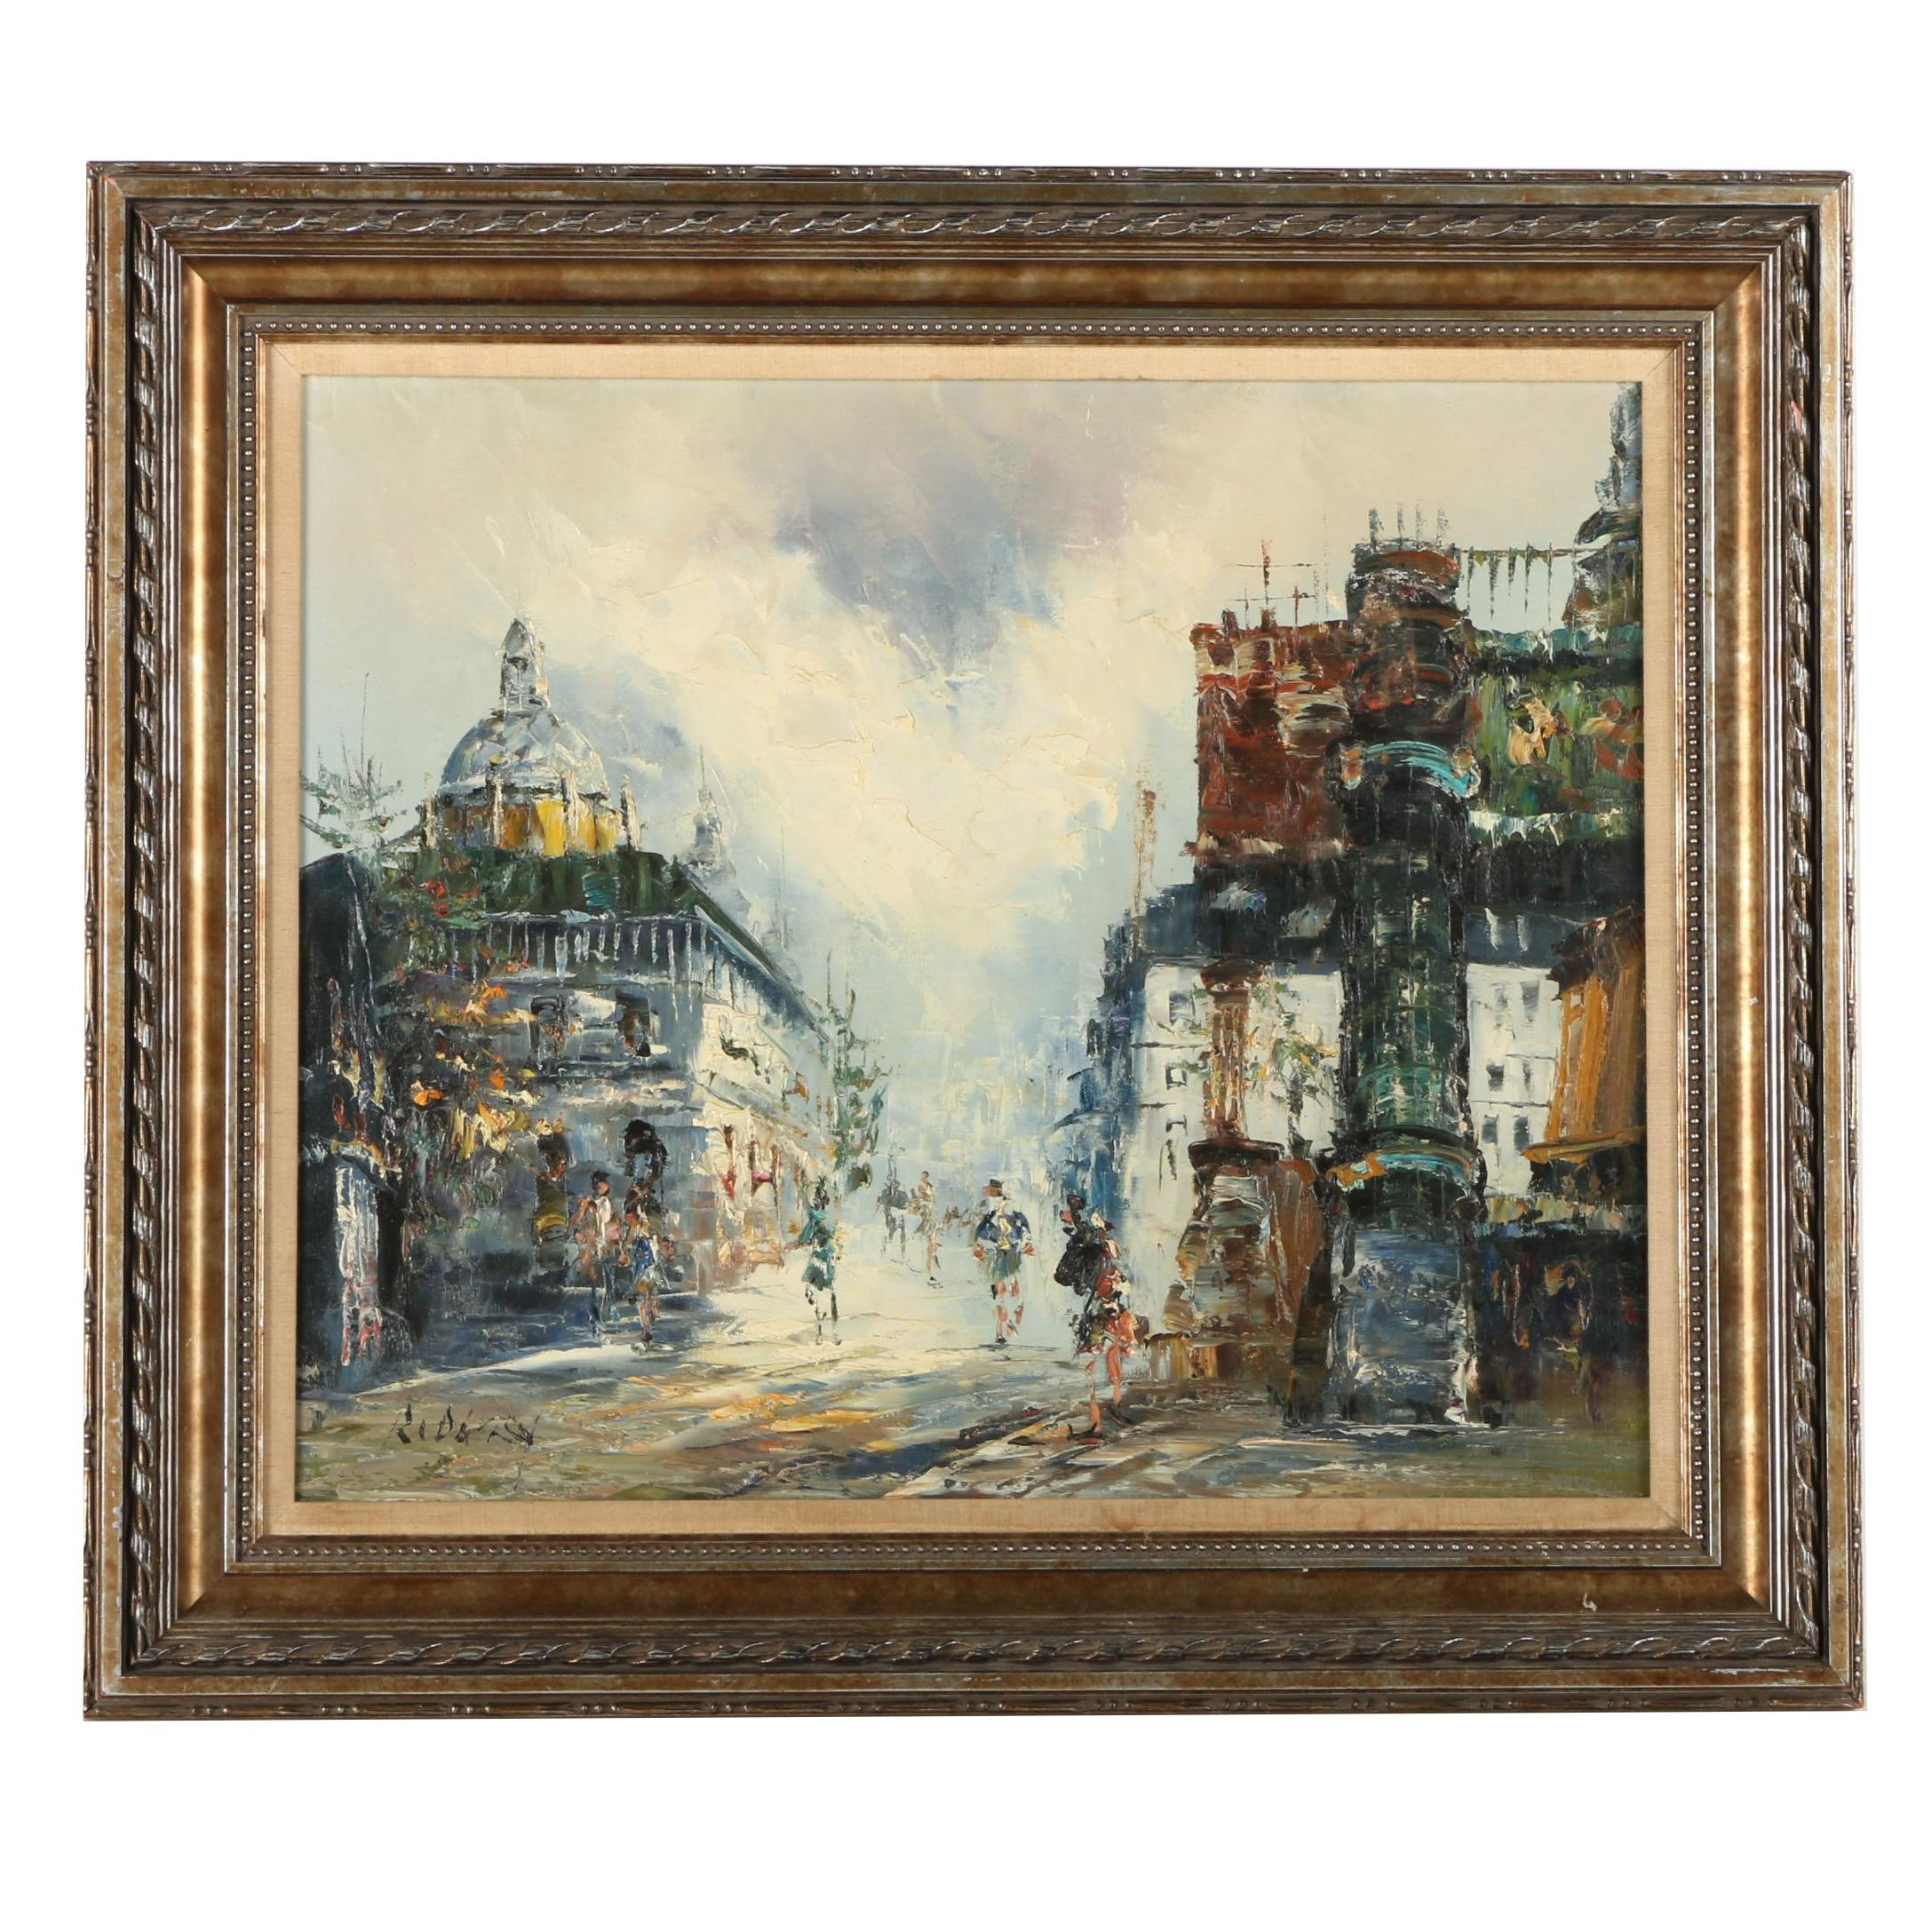 Oil Painting on Canvas of a European City